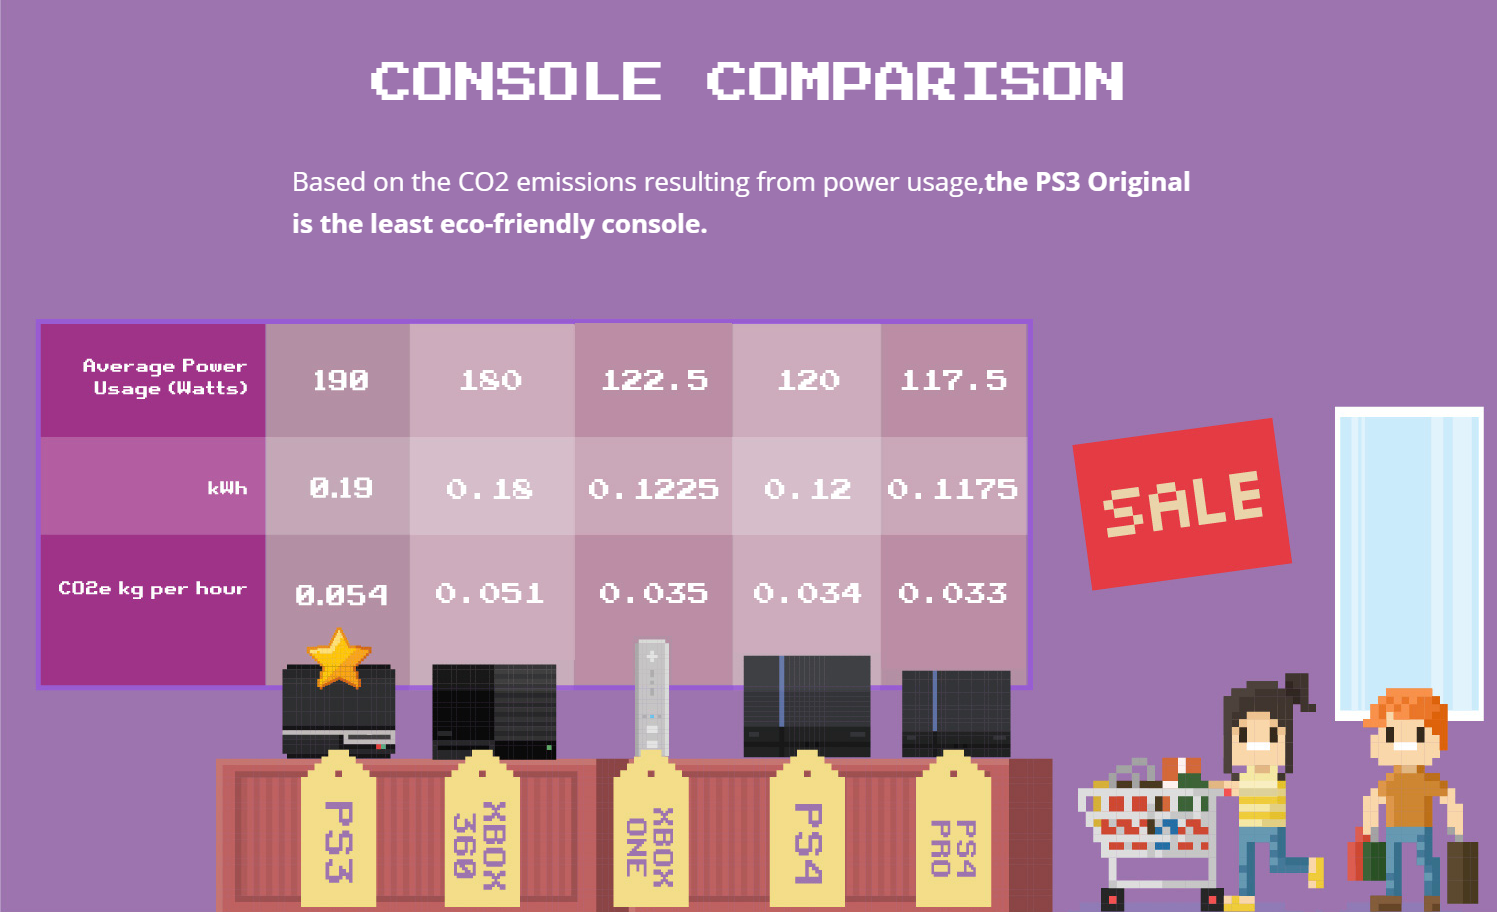 CONSOLE CARBON FOOTPRINT